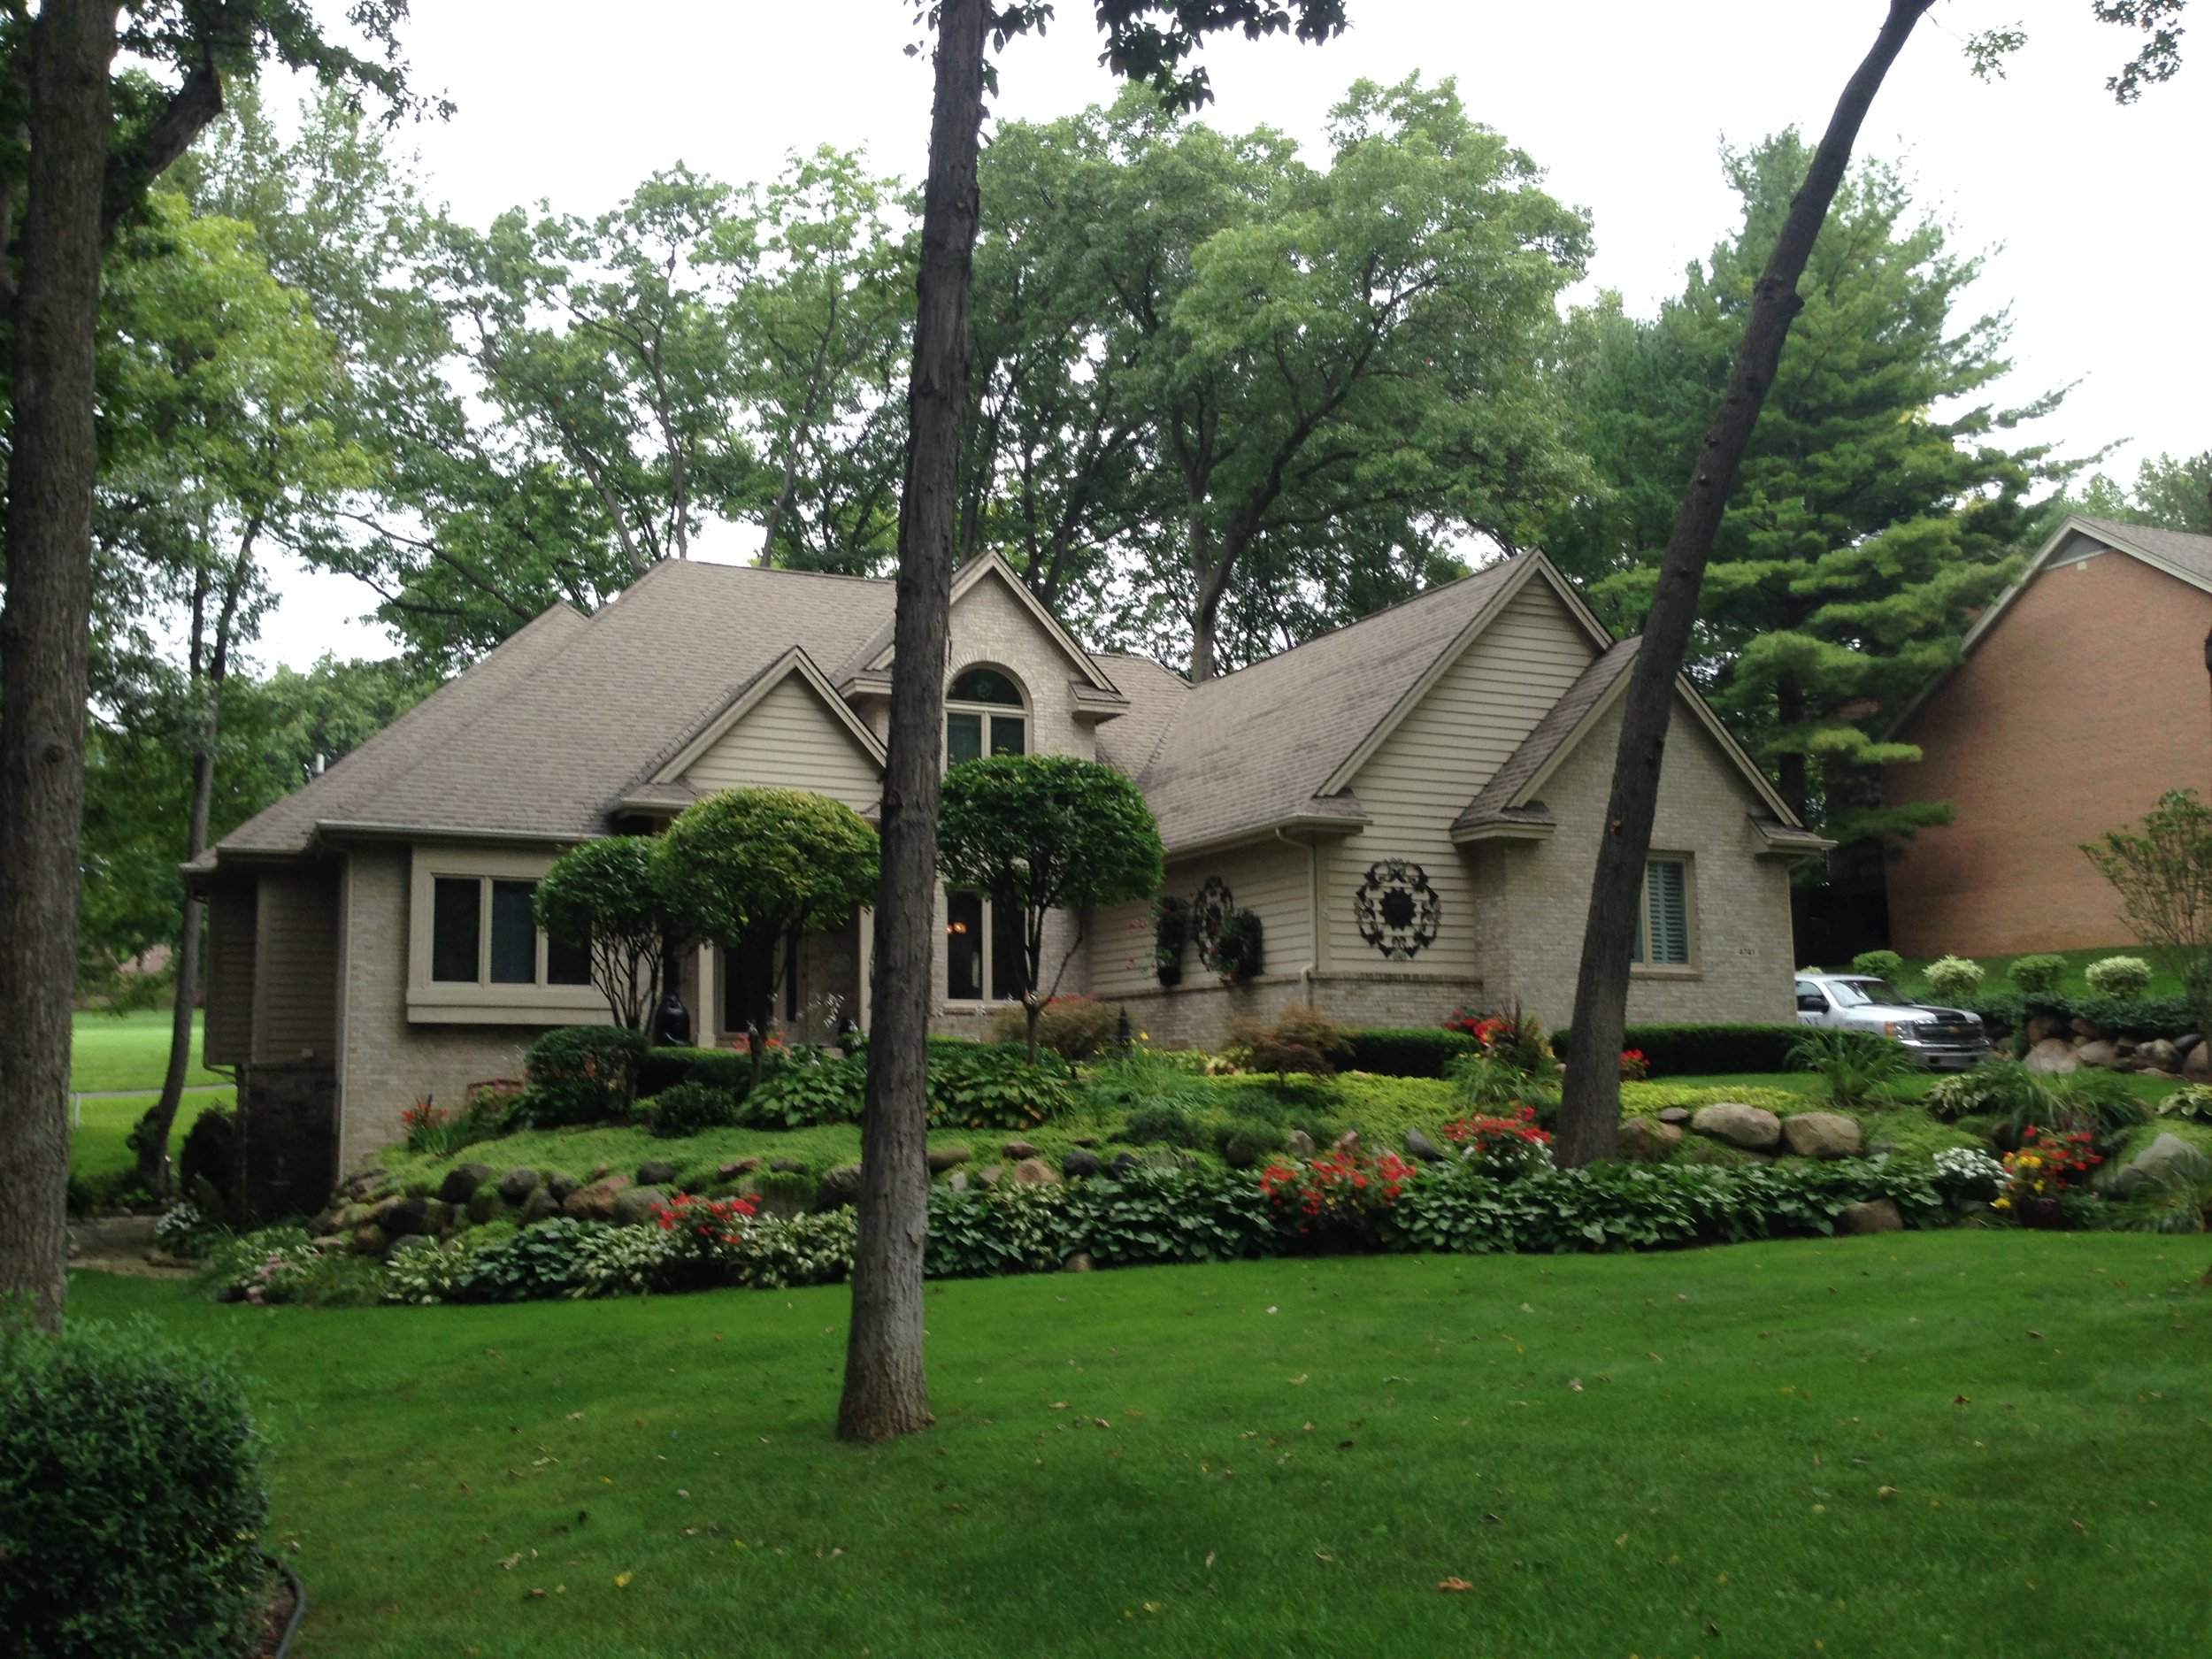 Oak Tree Ct- Brighton-Oak Pointe-$494,000   DOM (Days on Market) 7/ Sold for 97% of asking price.   This was a meticulously maintained 2 story home in the popular Oak Pointe Country Club sub. This took 8 showings to sell!!